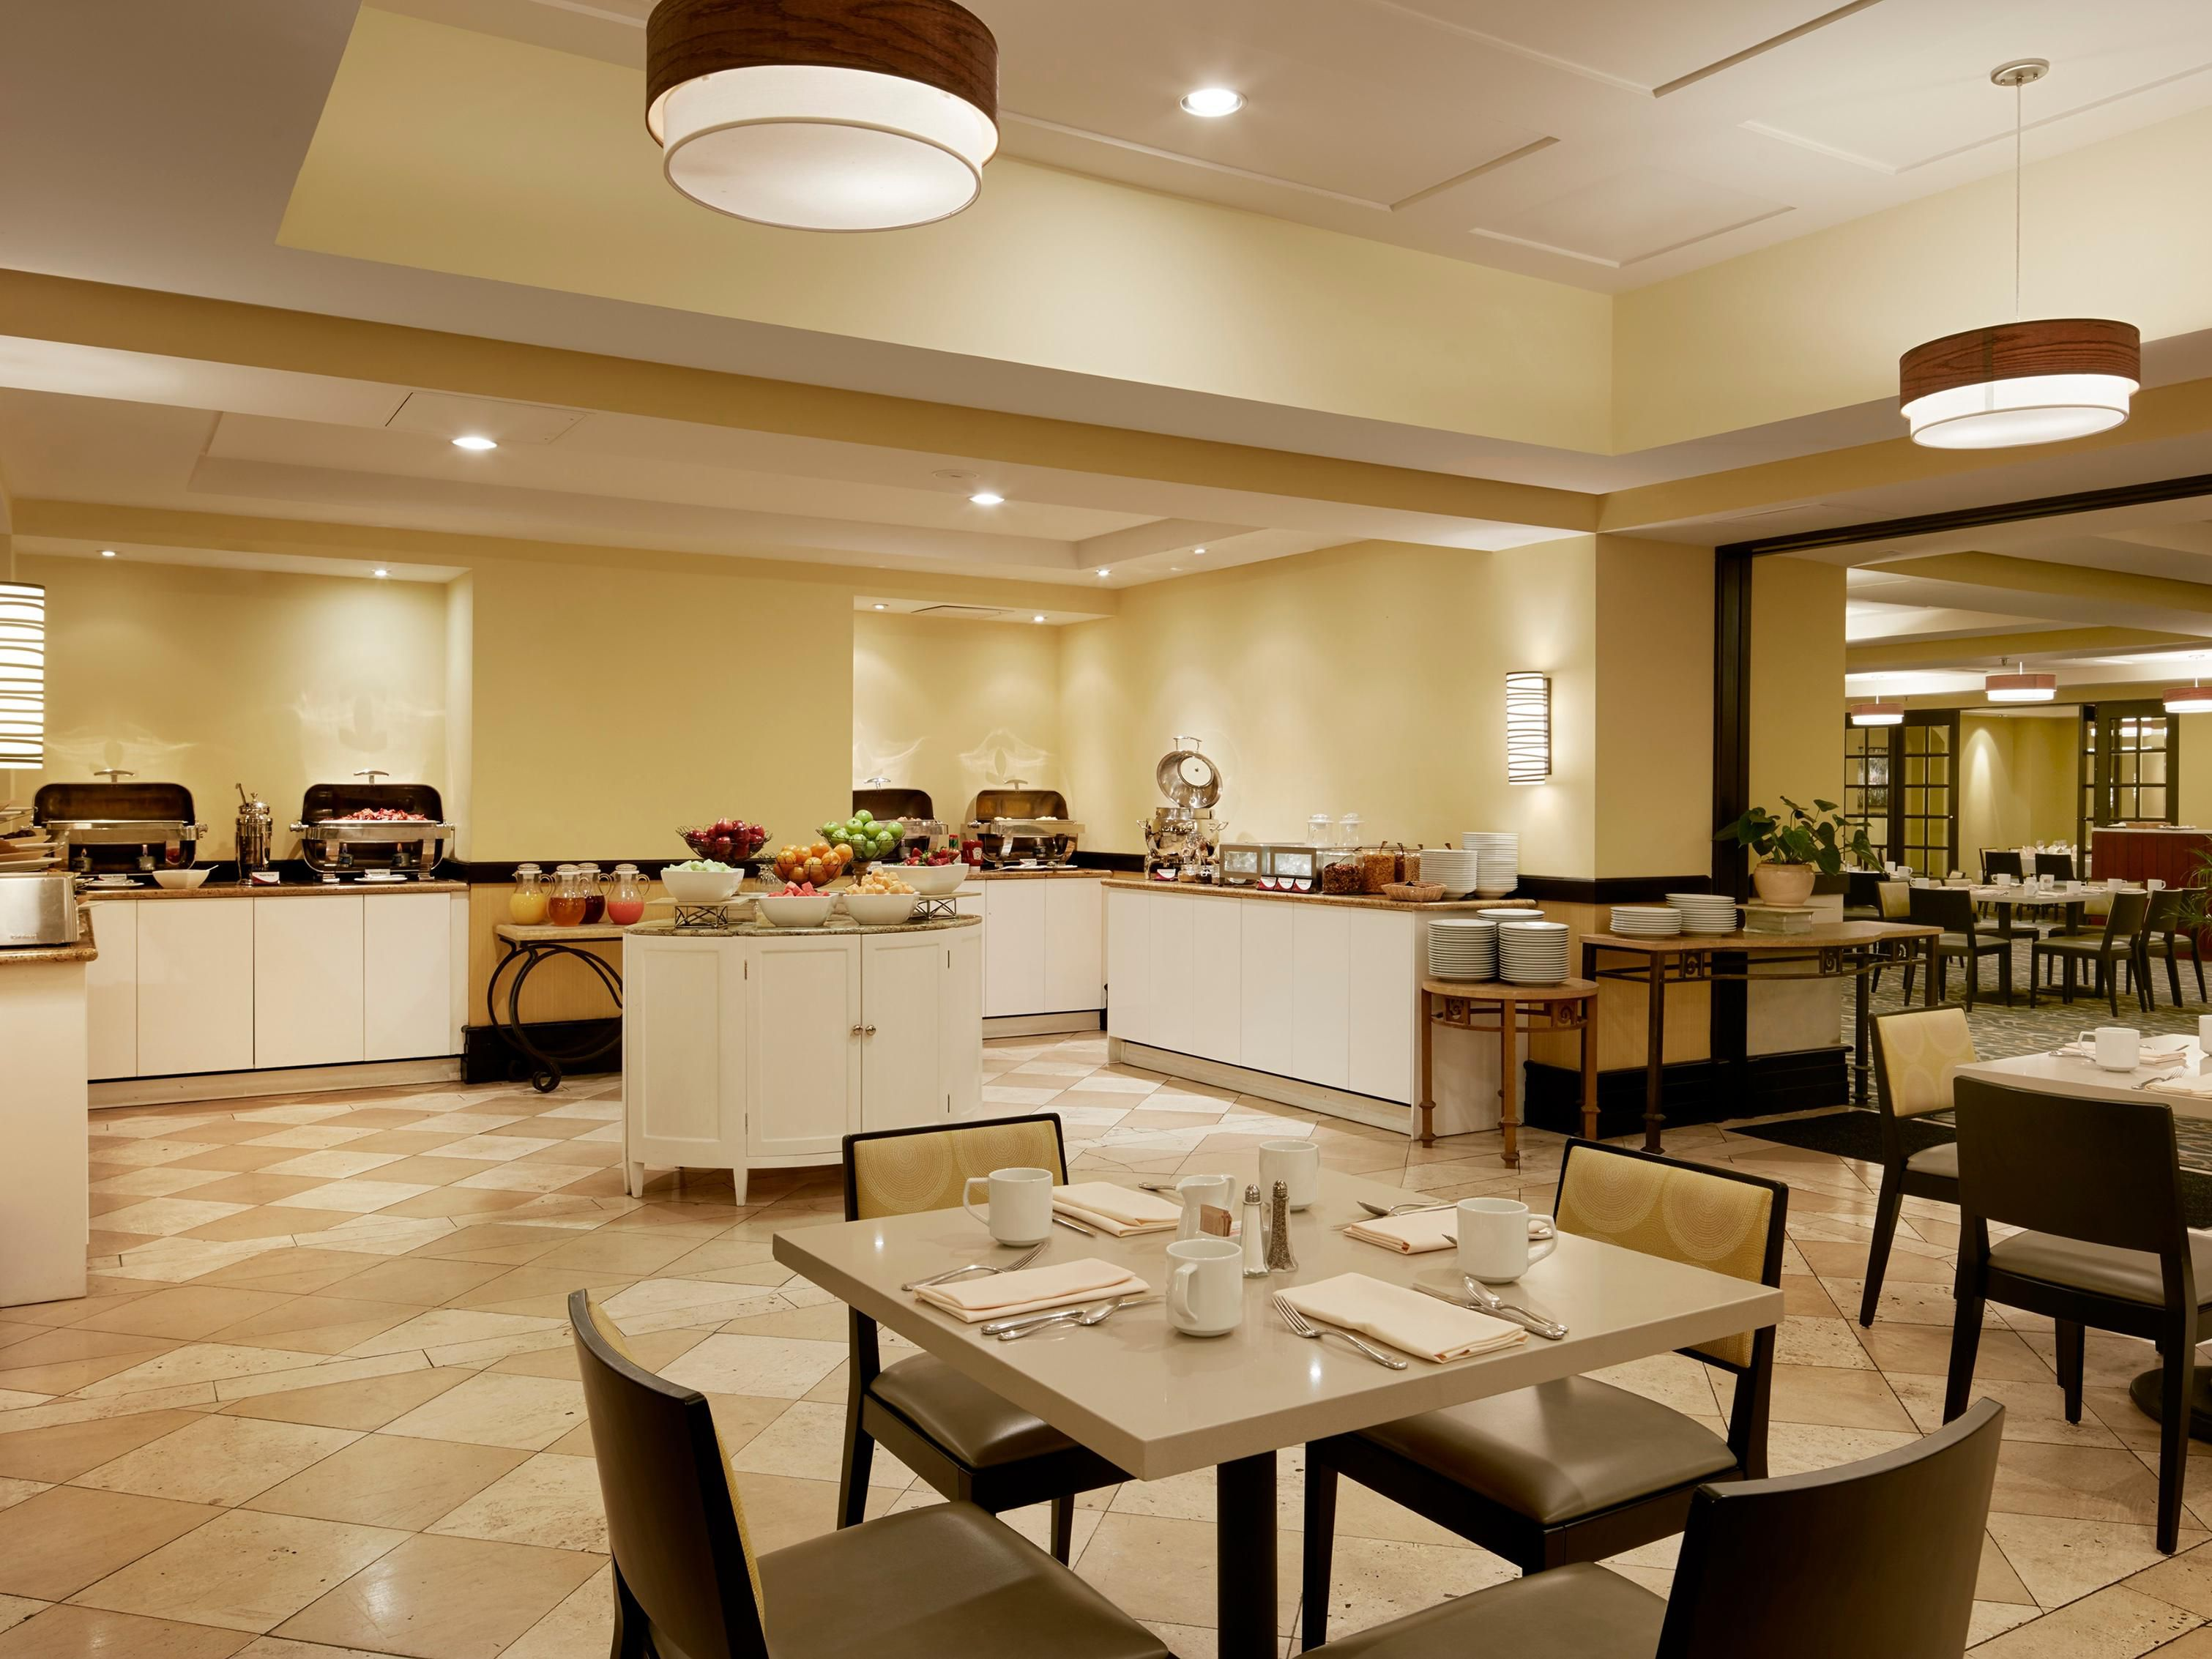 Crowne plaza palo alto palo alto california breakfast area groupsandmeetingsphotos sciox Gallery